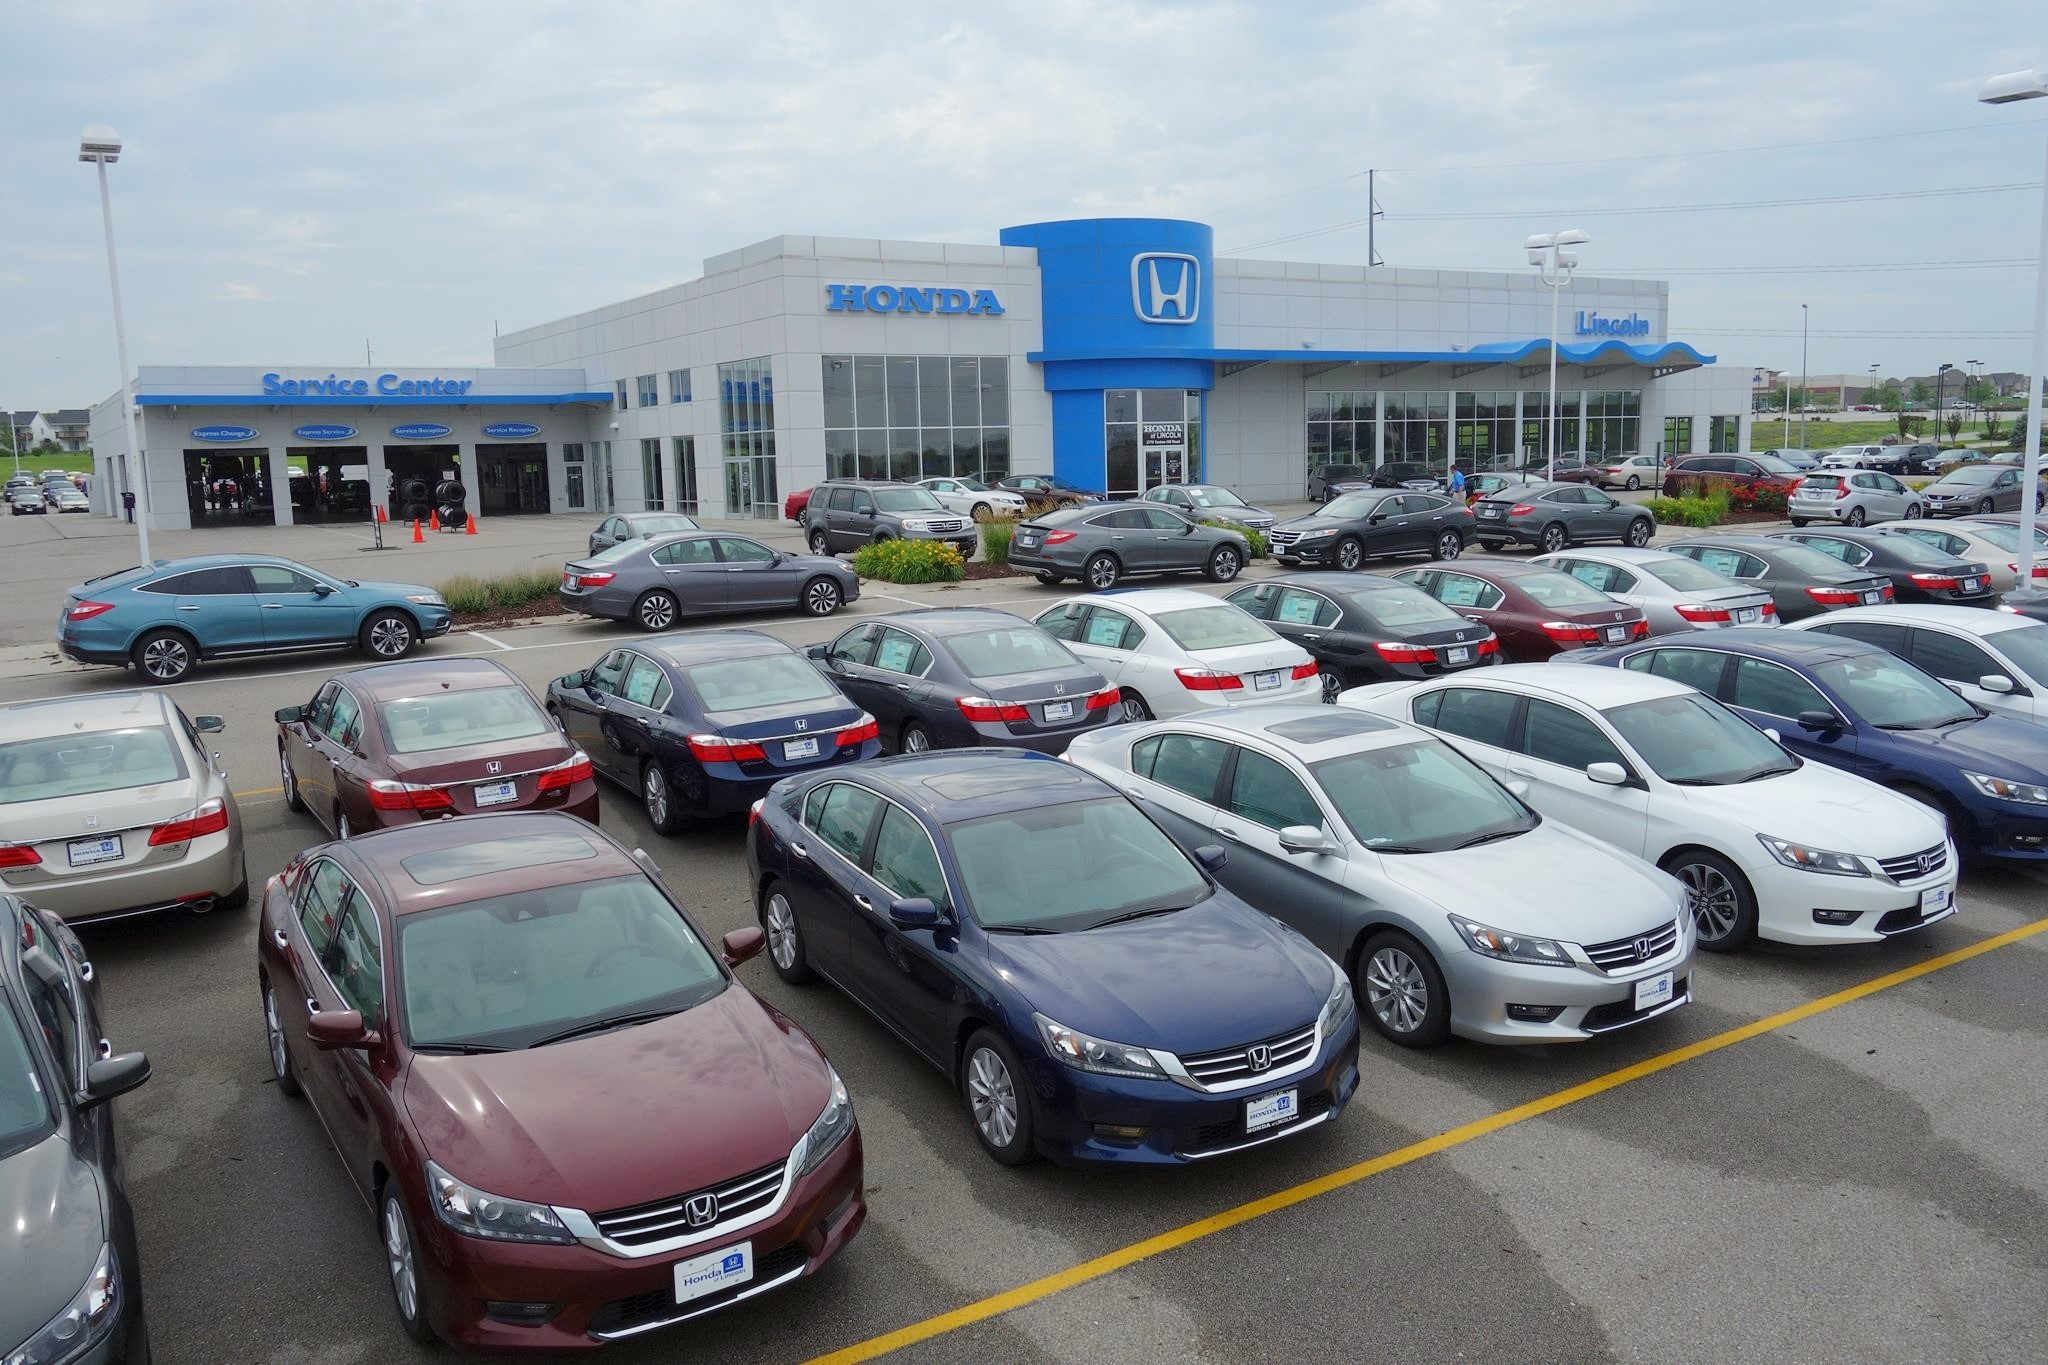 honda of lincoln in lincoln ne auto dealers yellow pages directory inc. Black Bedroom Furniture Sets. Home Design Ideas